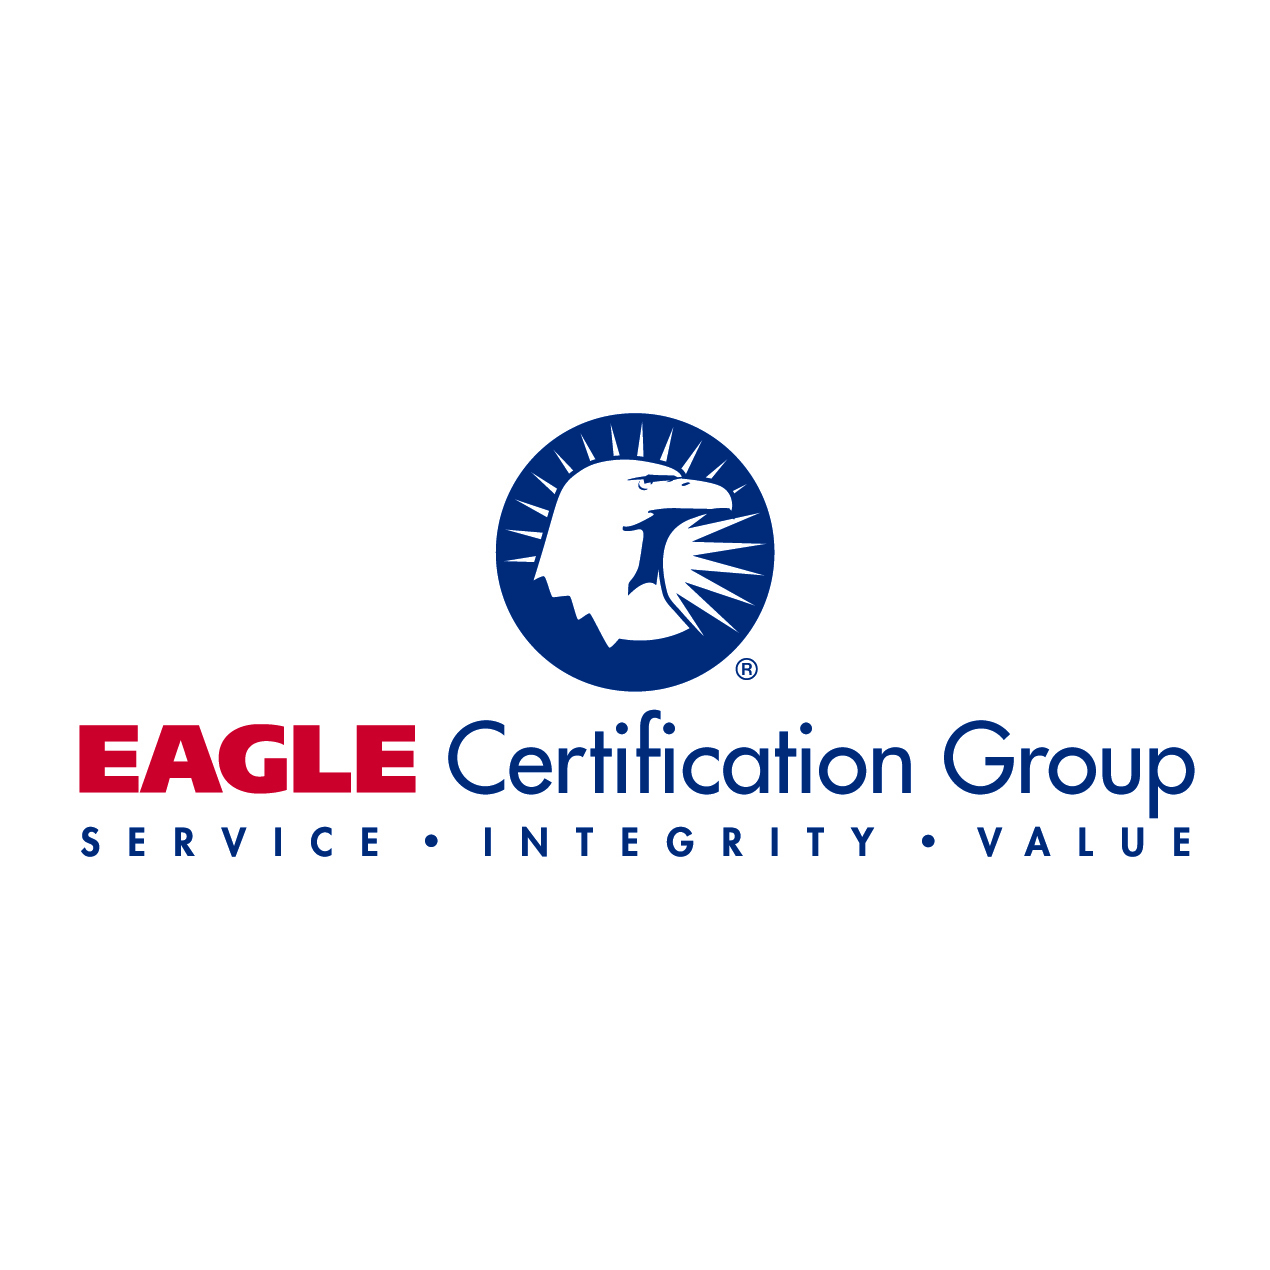 EAGLE Certification Group - RECEPTION